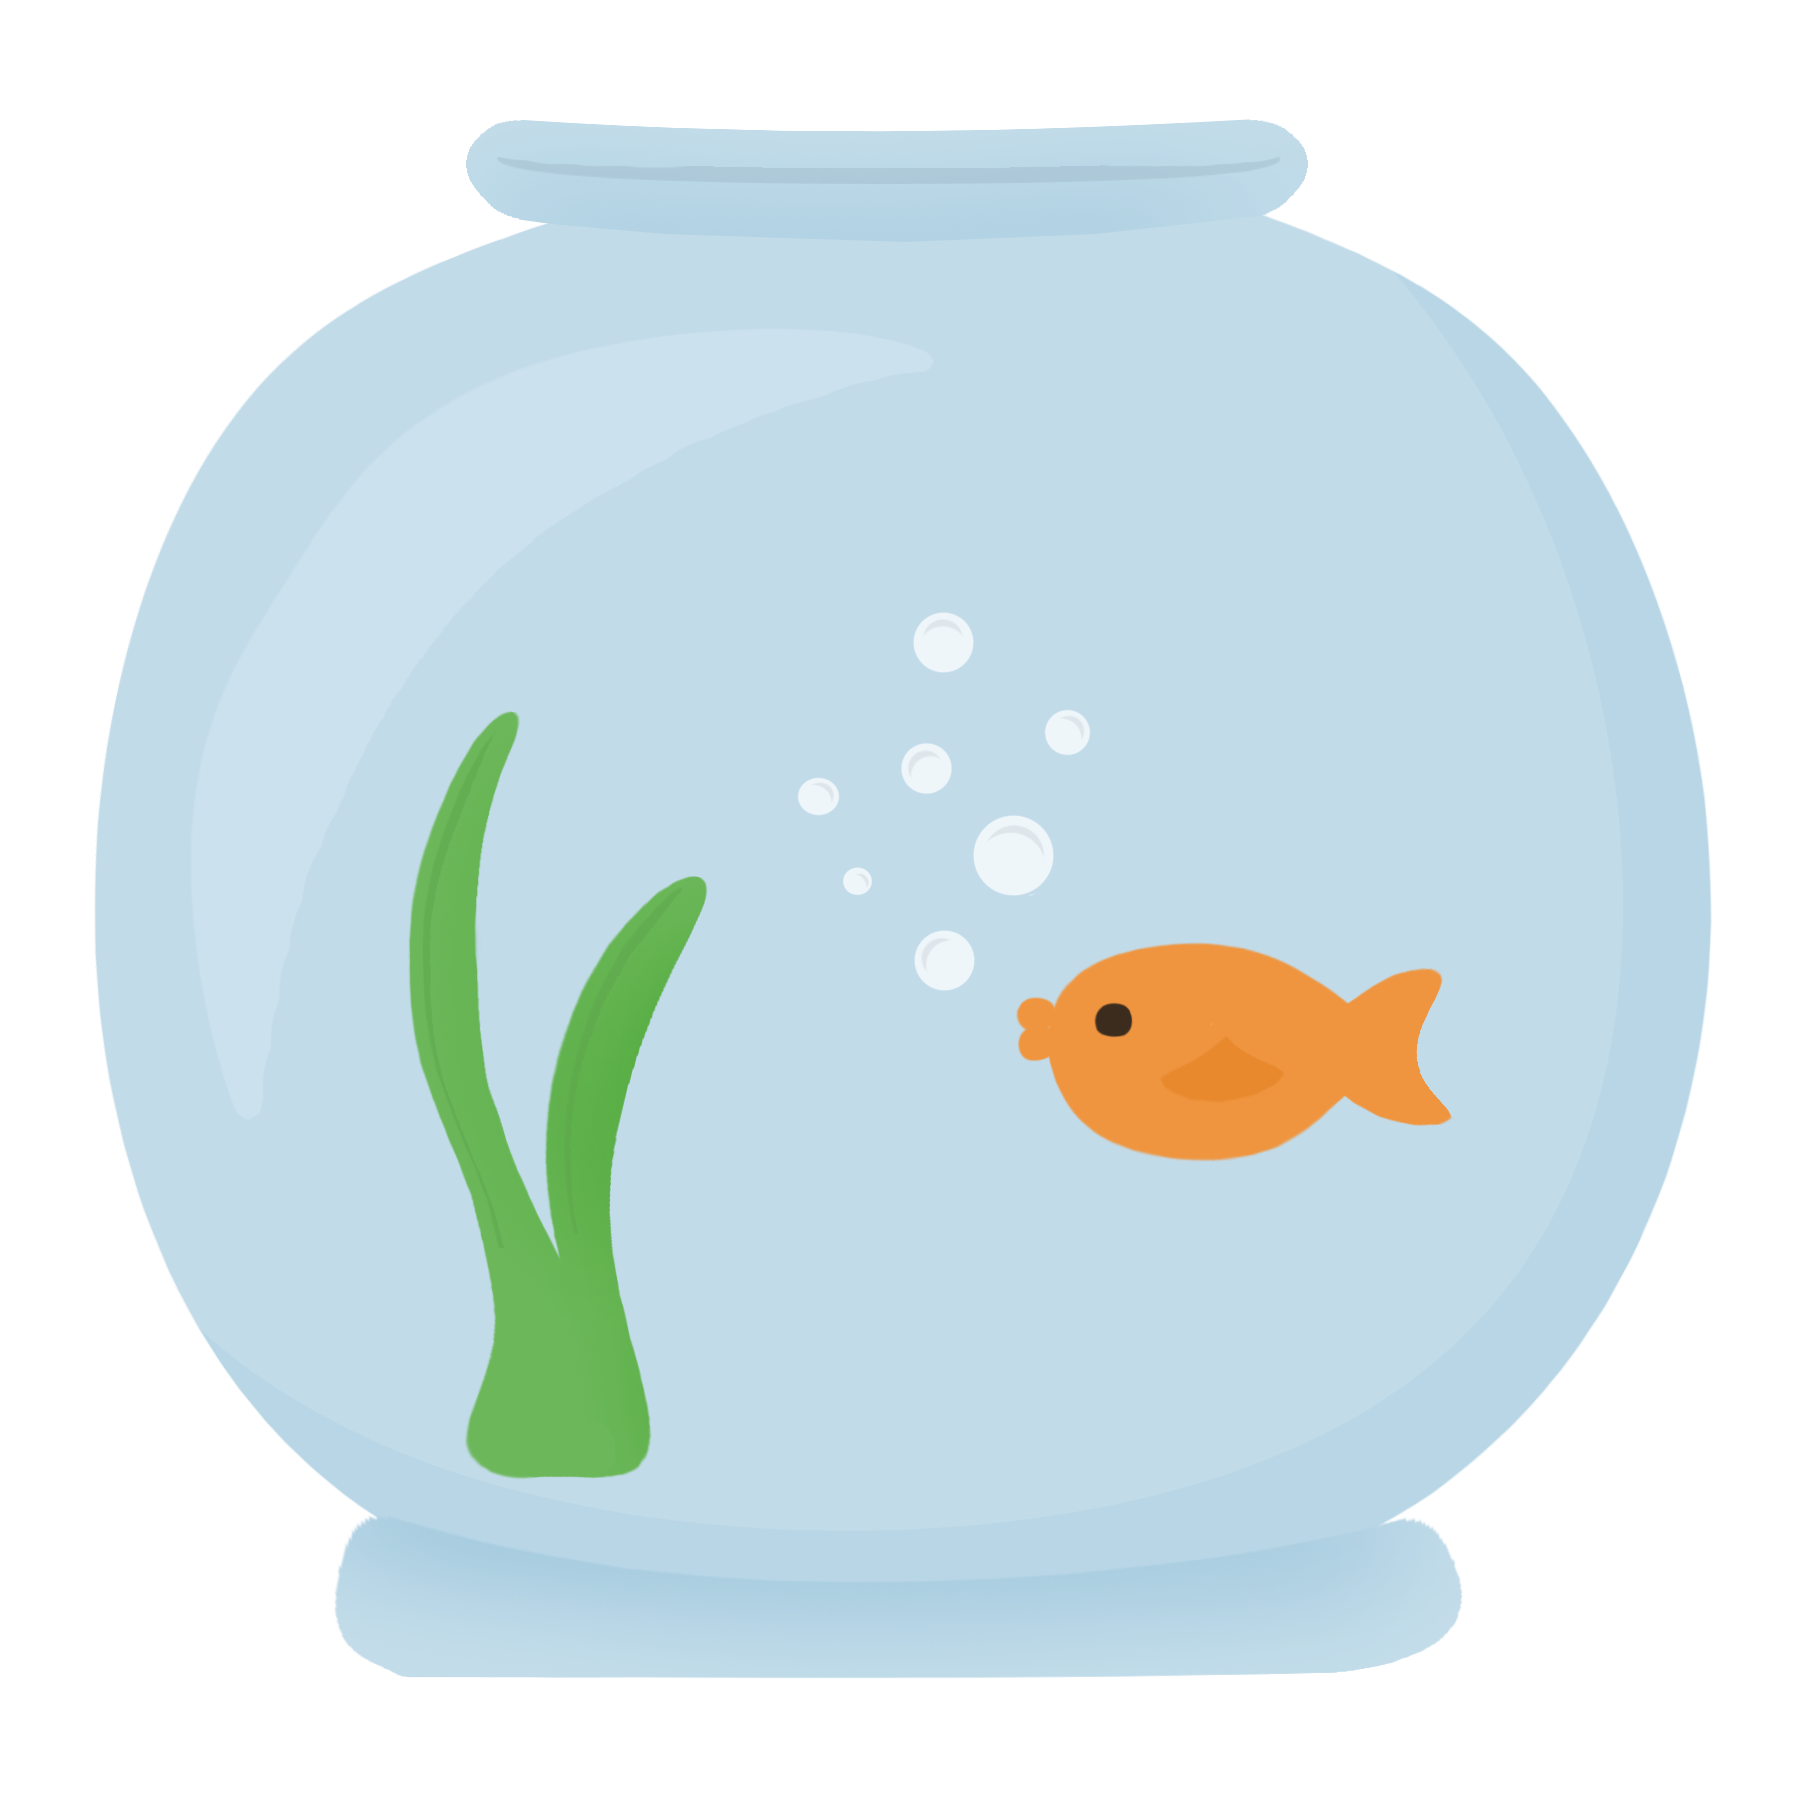 Pet clipart fish feeder. Organism bowl transprent png